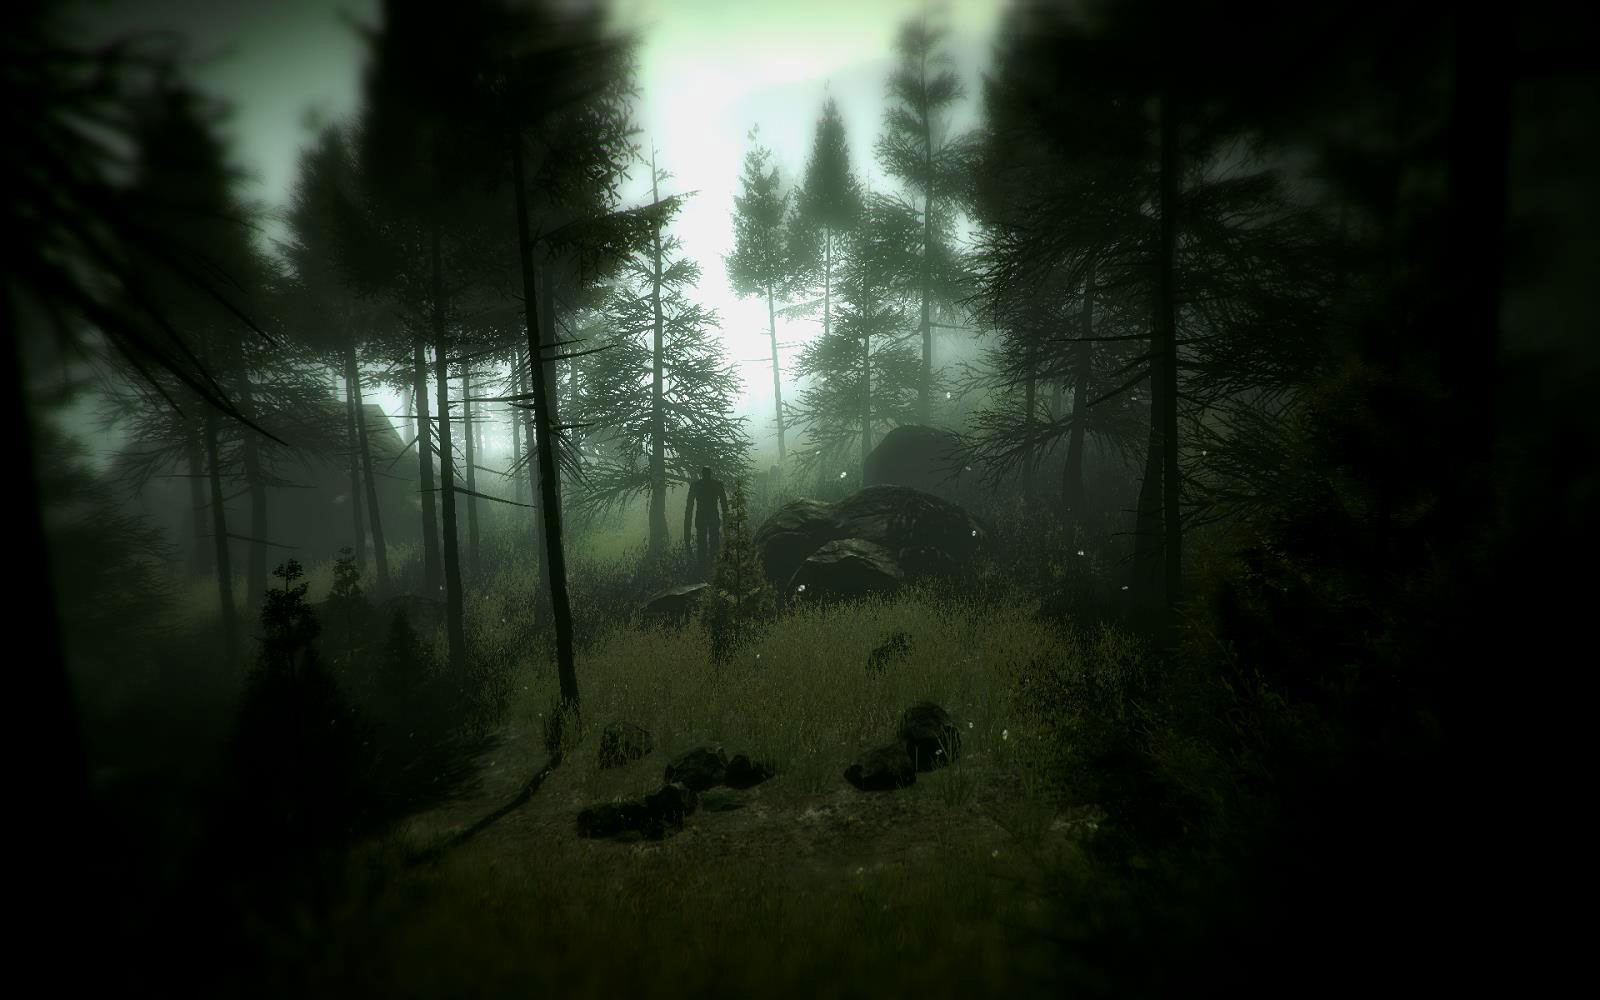 """Slender Man as he appears in """"Slender: The Arrival."""" Image used with permission. (http://www.slenderarrival.com/images/gallery/forestfog.jpg)"""